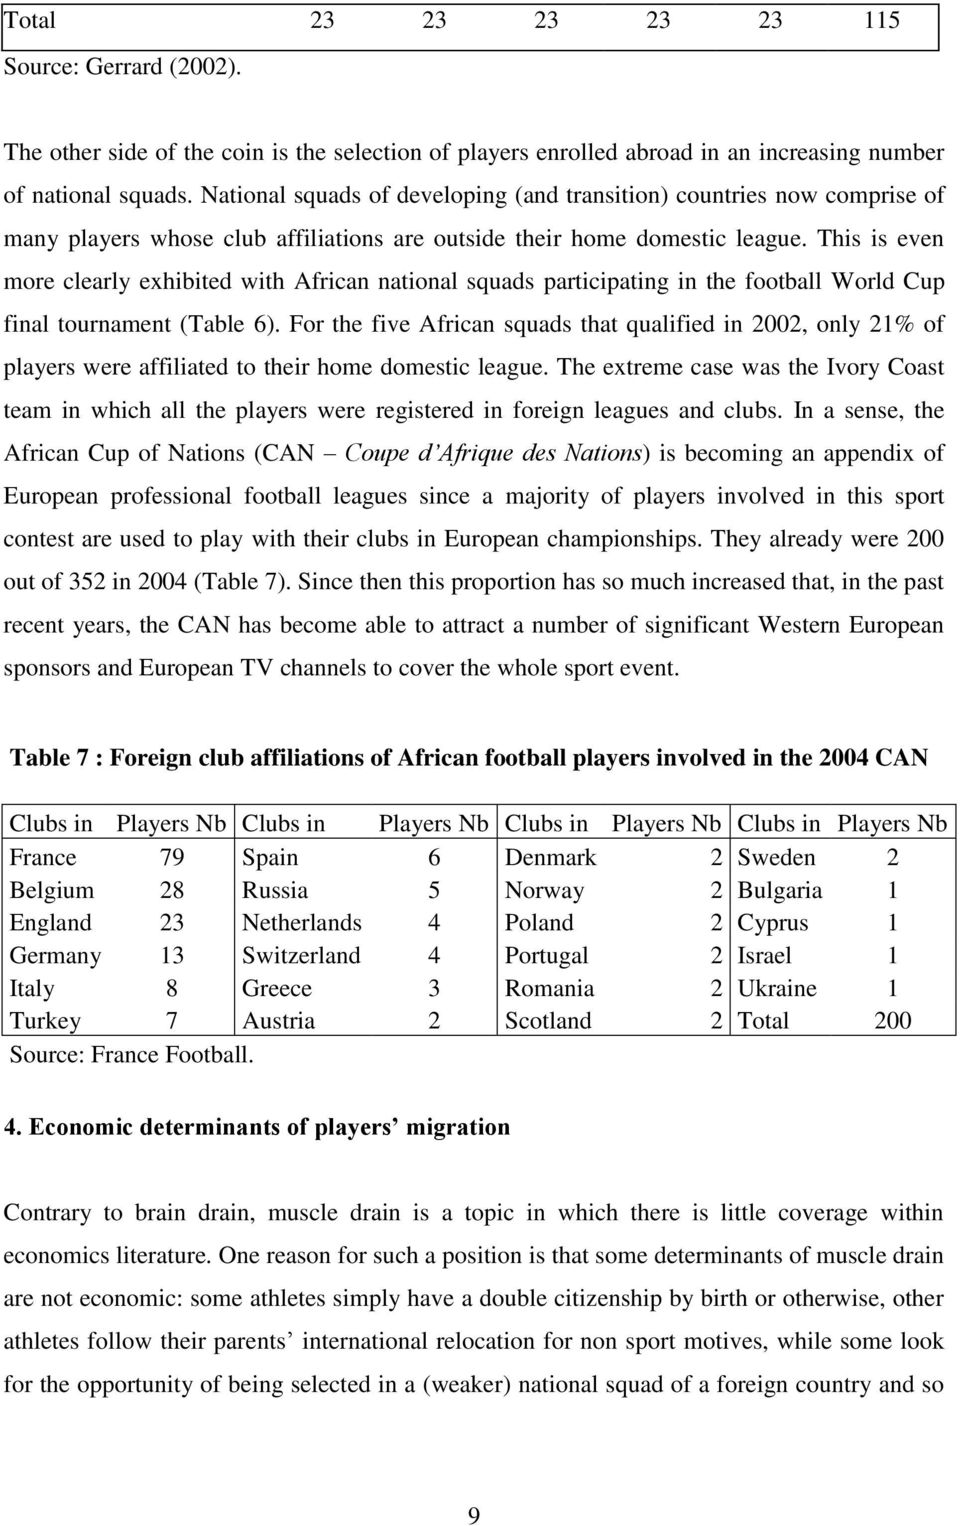 This is even more clearly exhibited with African national squads participating in the football World Cup final tournament (Table 6).